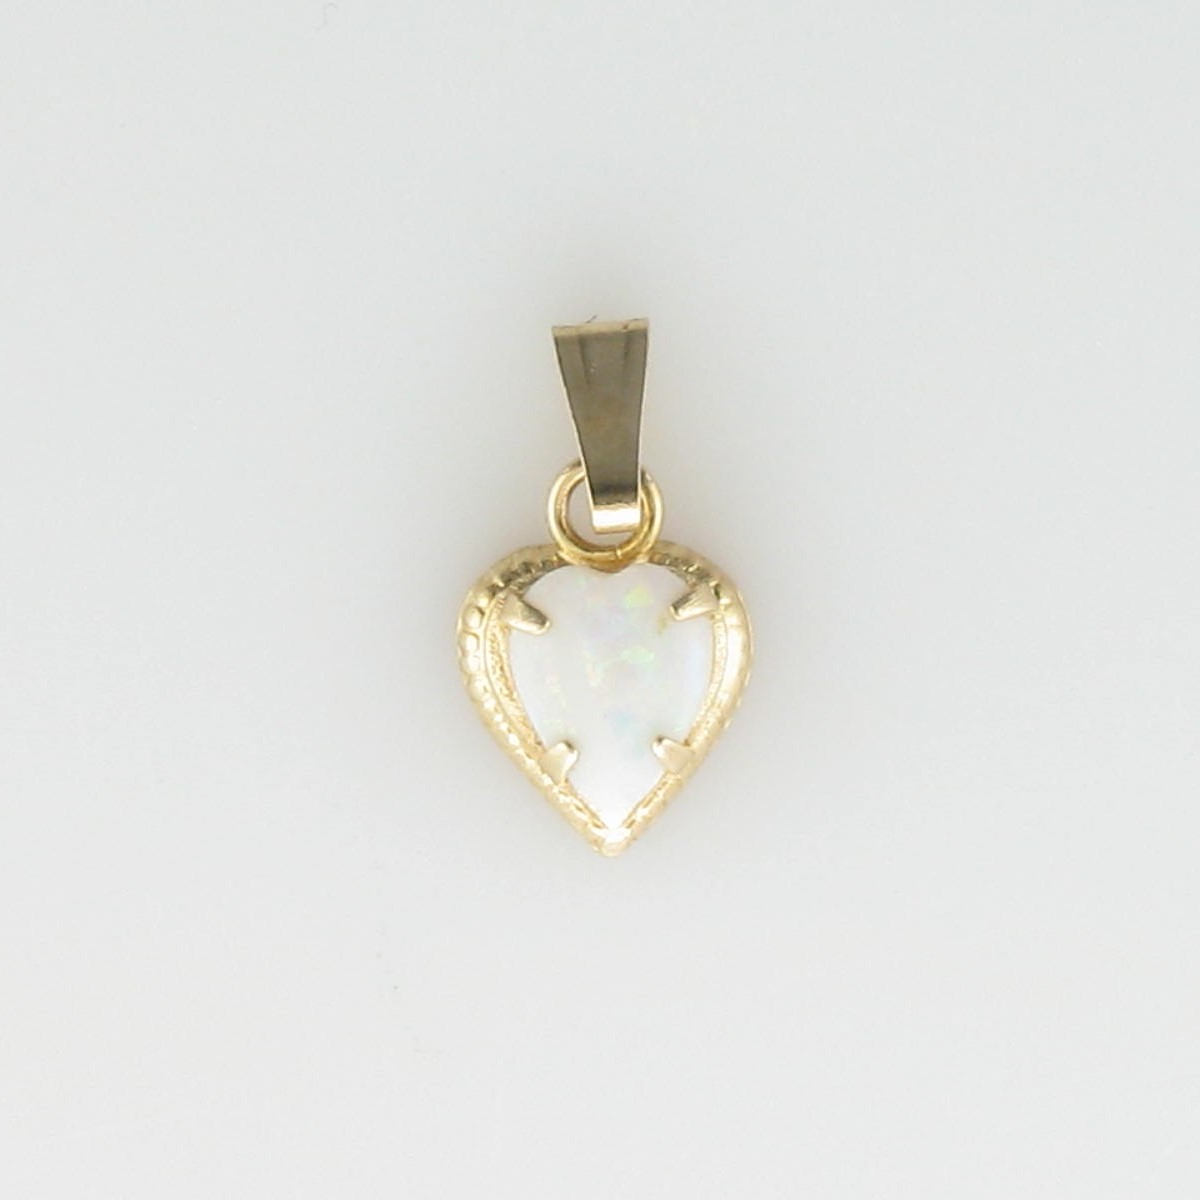 Heart Shaped Opal Pendant set in 14K Yellow Gold